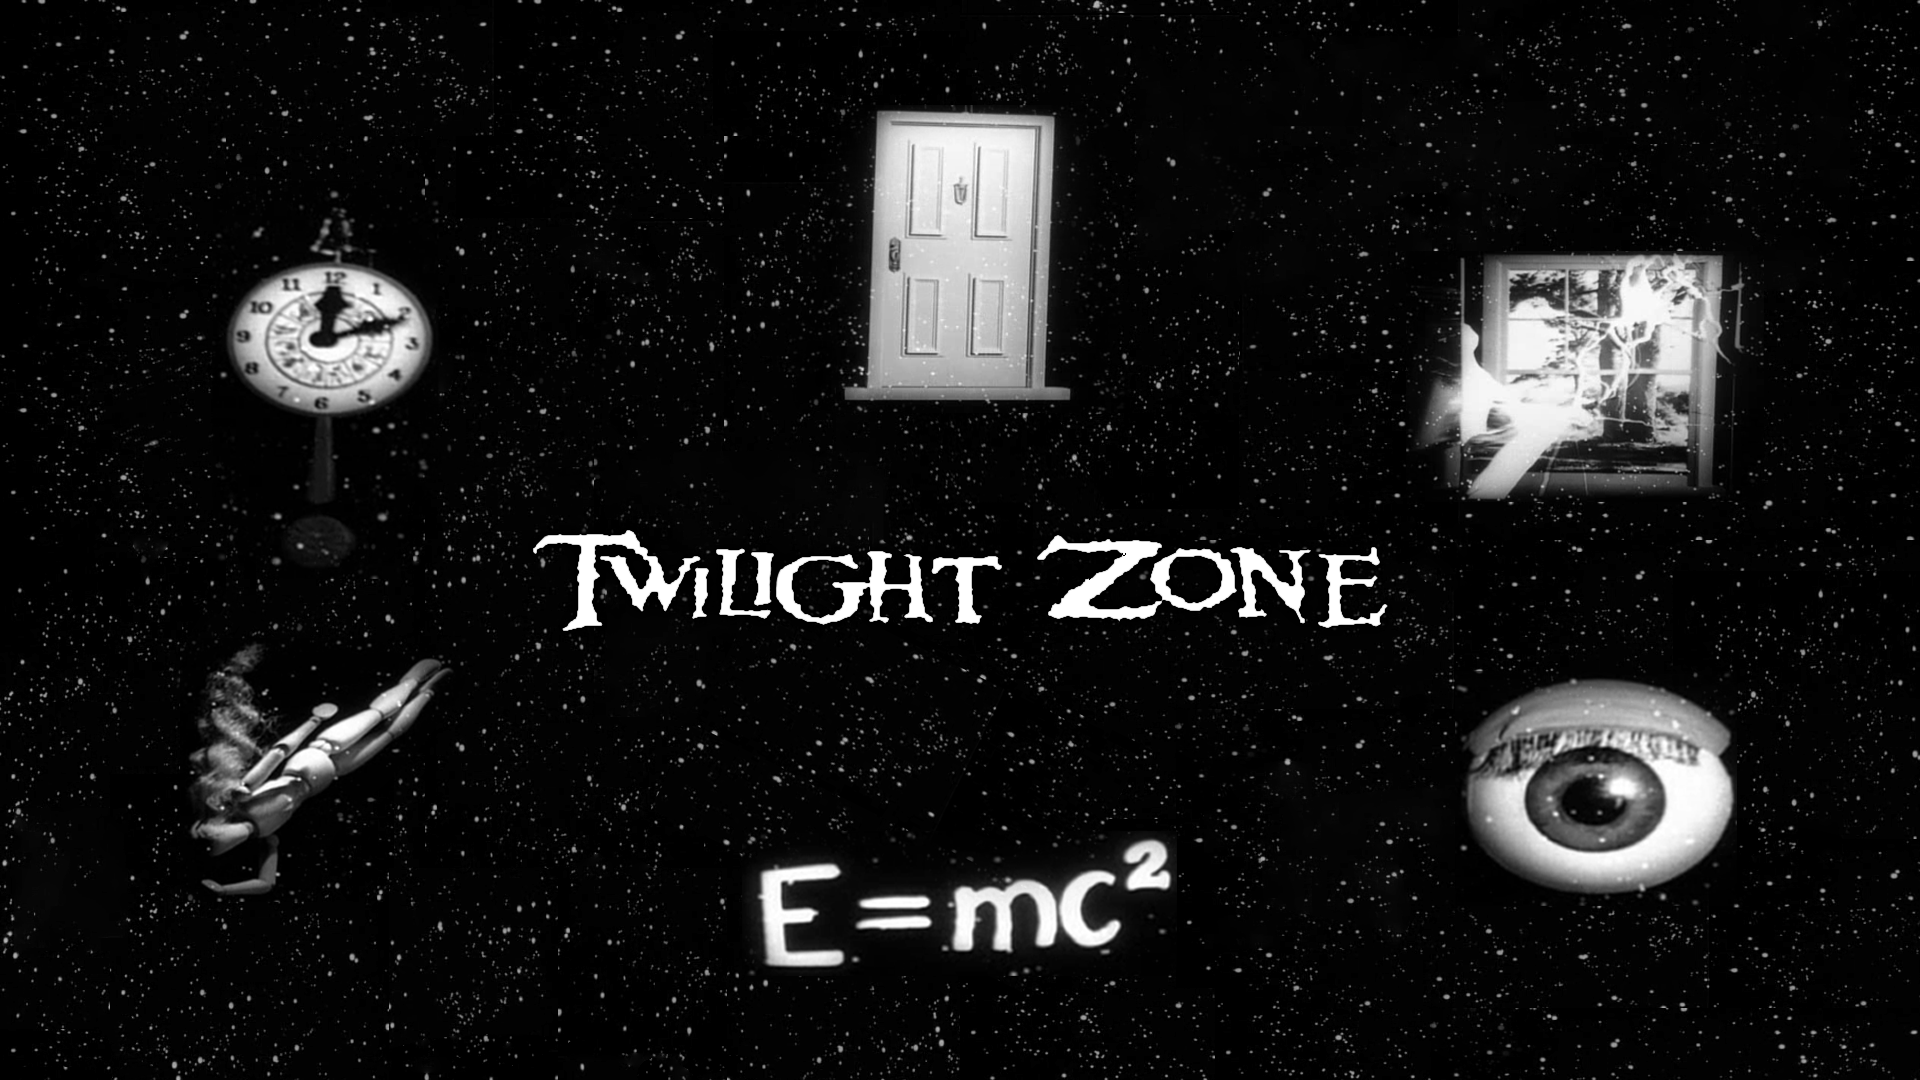 OC] Twilight Zone Wallpapers